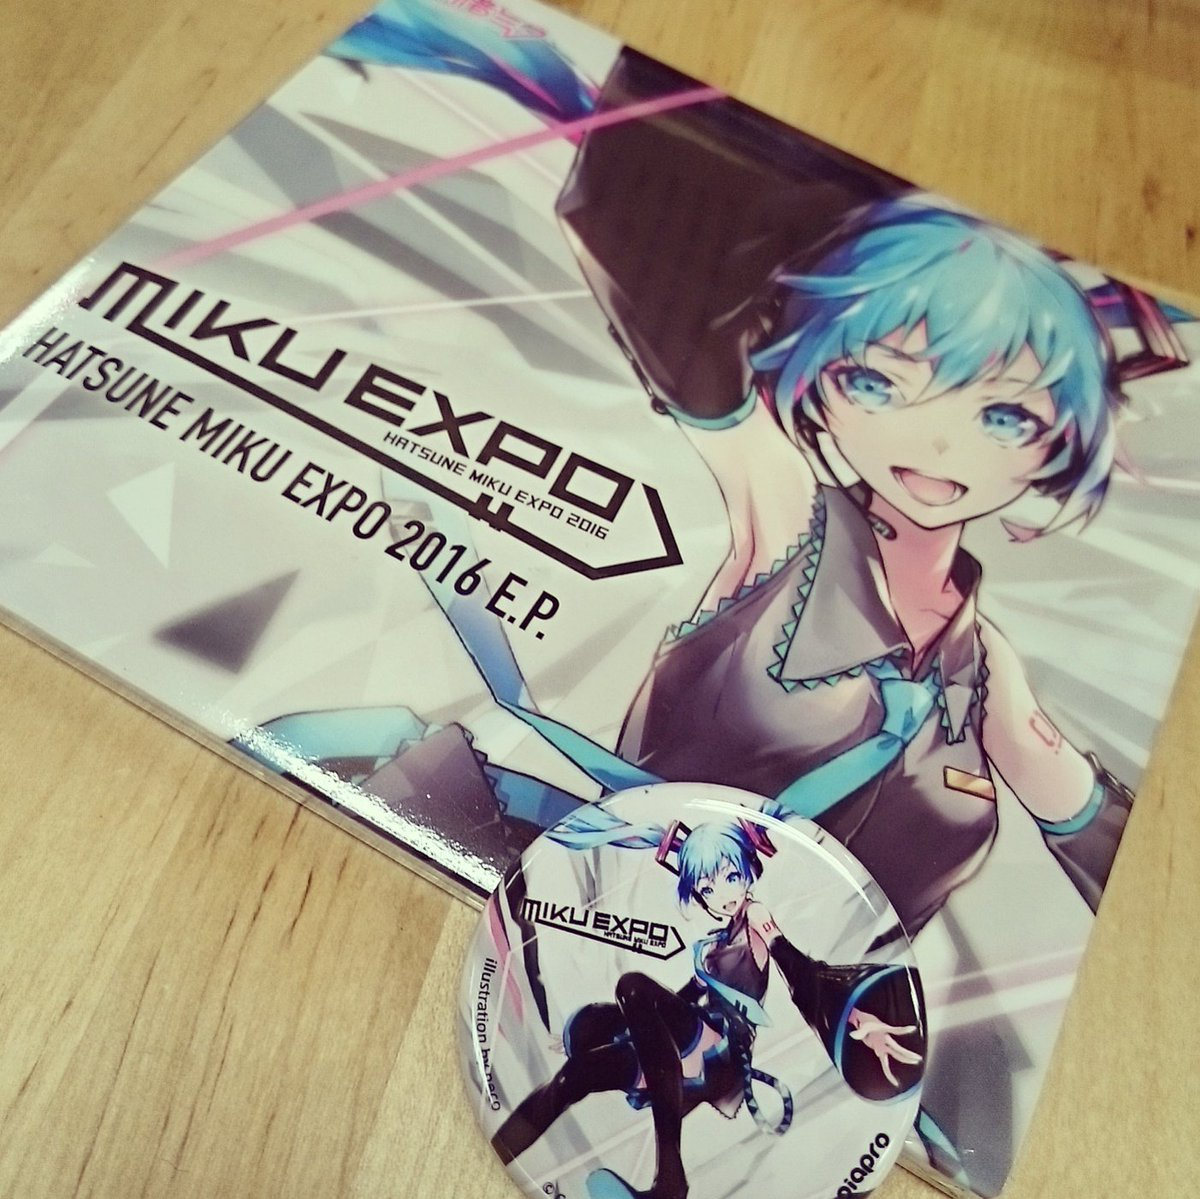 Tomm is #MikuDay! Get your #mikuexpo2016 CD starting tomm at NY, Chicago, Seattle, SF, and LA! Plus Kino excl badge! https://t.co/t1lyrA0otV